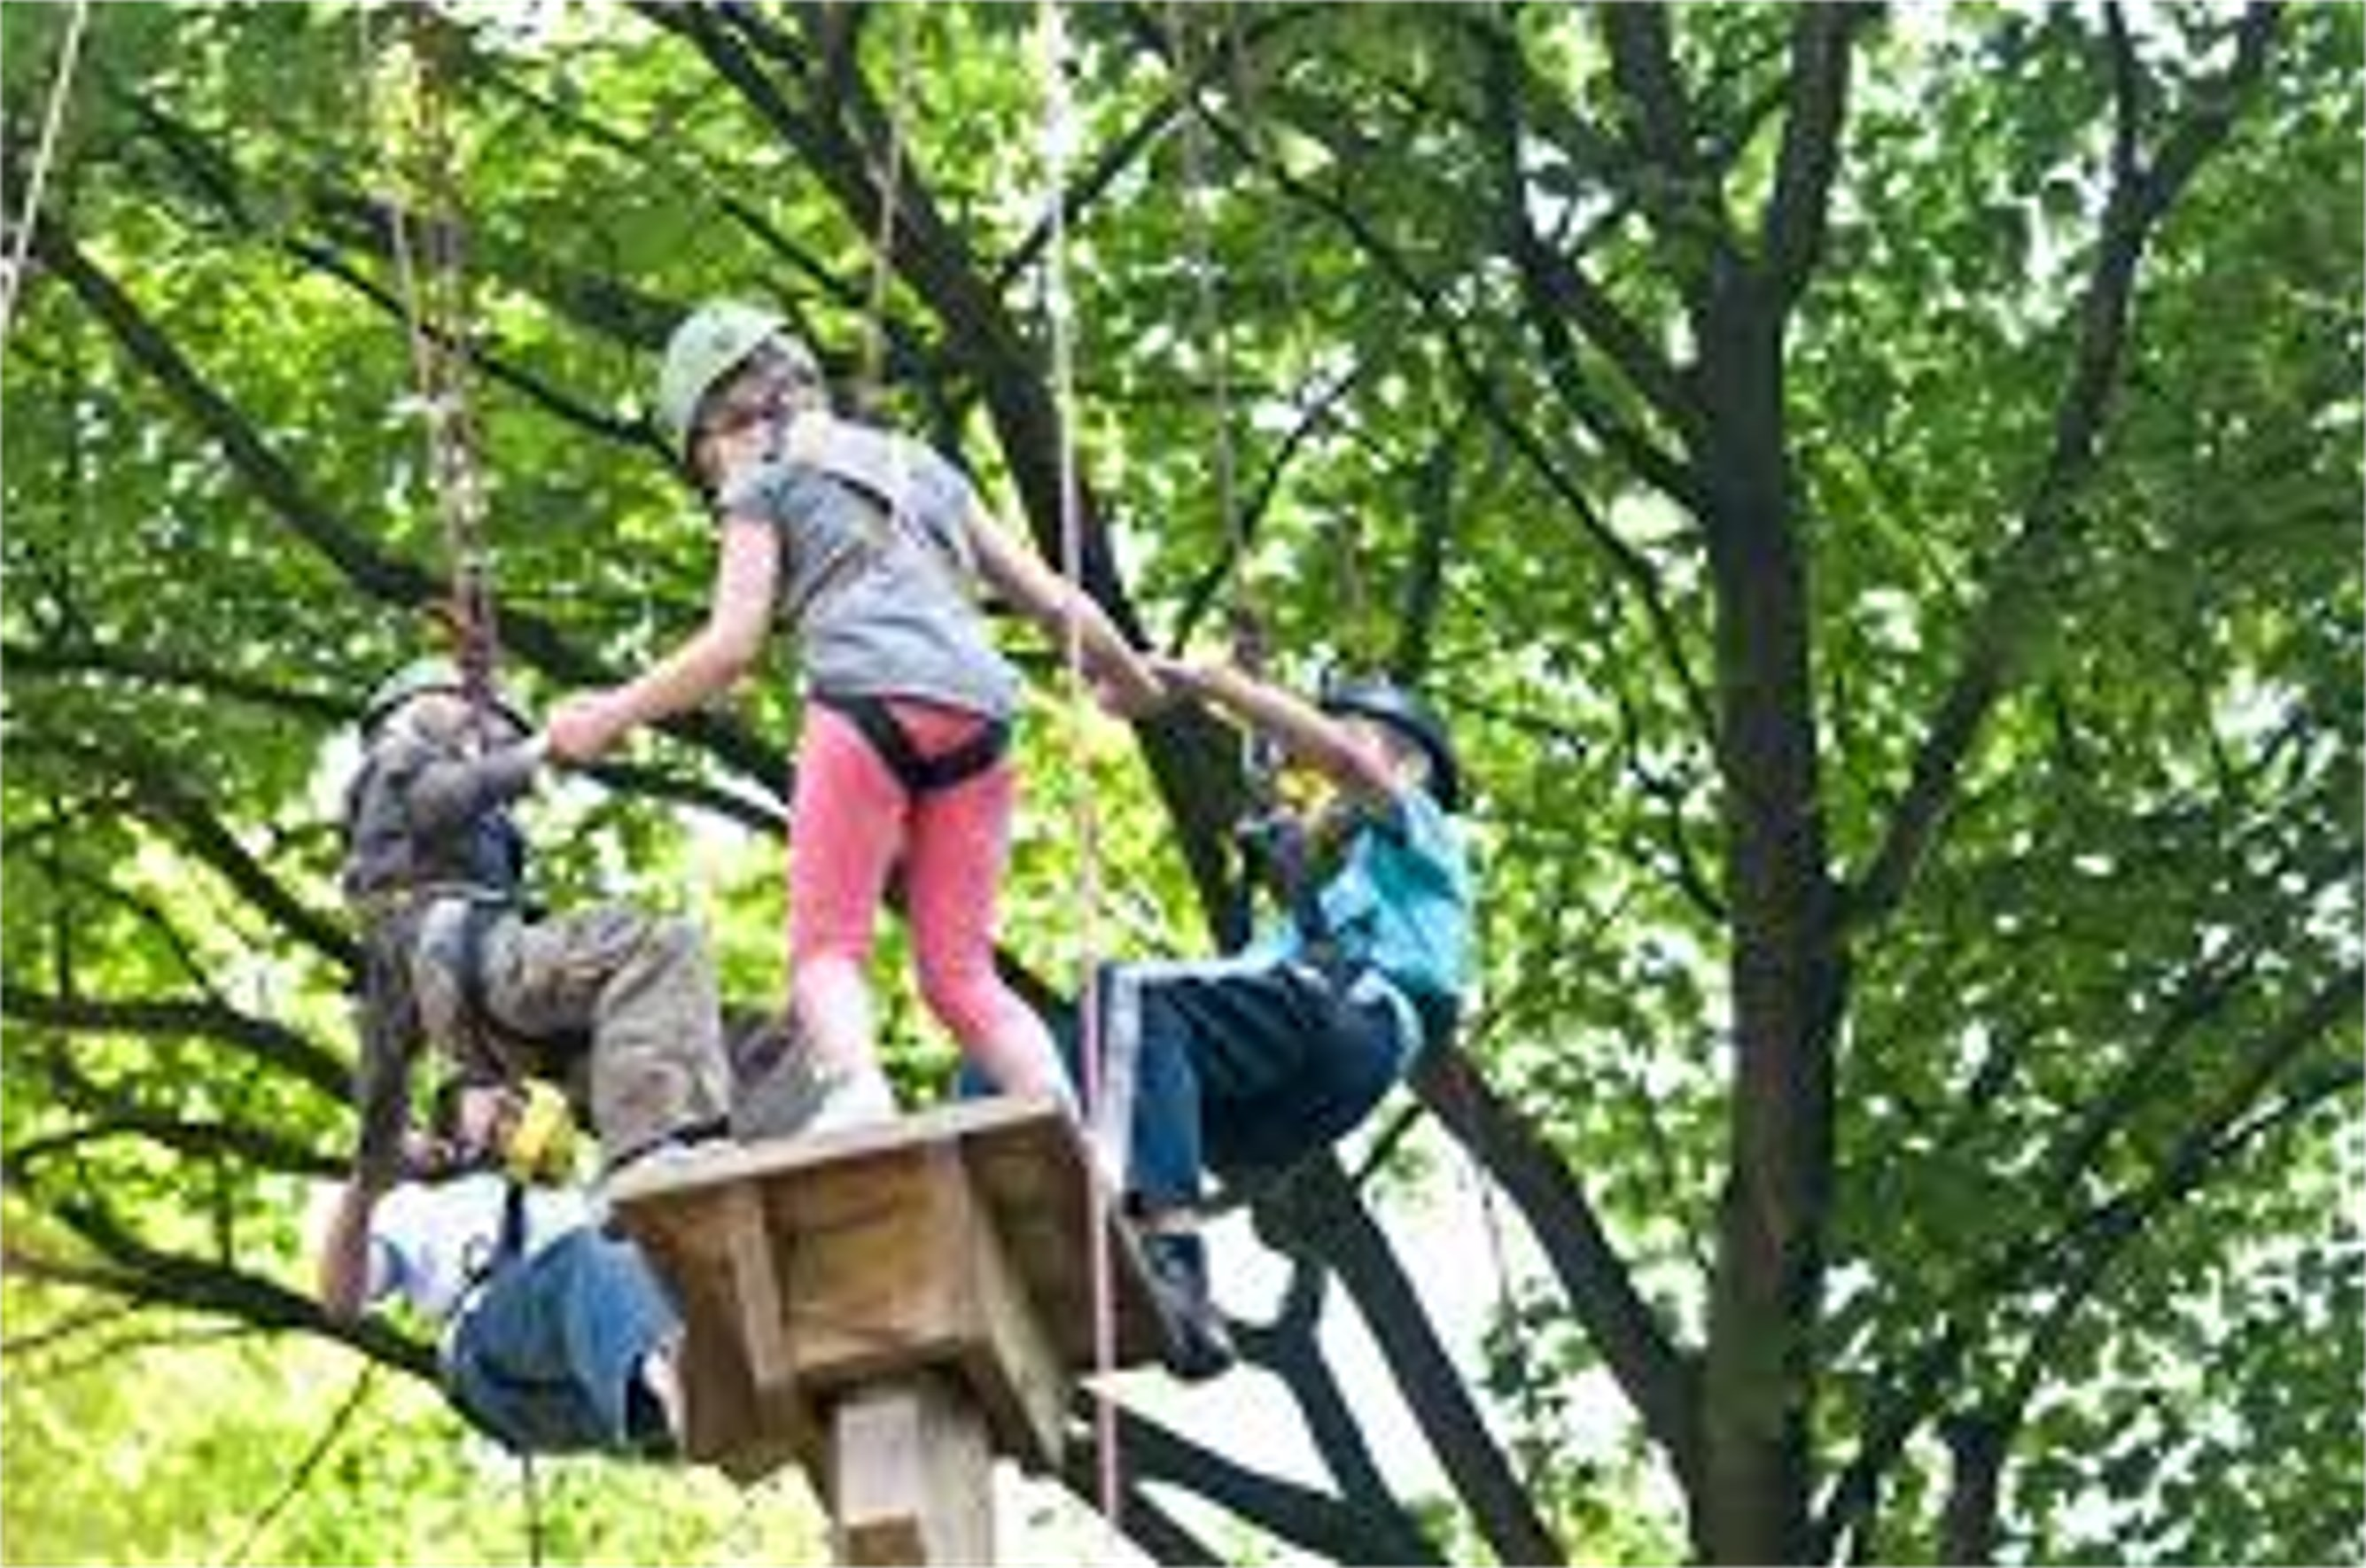 Gateway Outdoors Adventure Activities Shropshire - Third Image